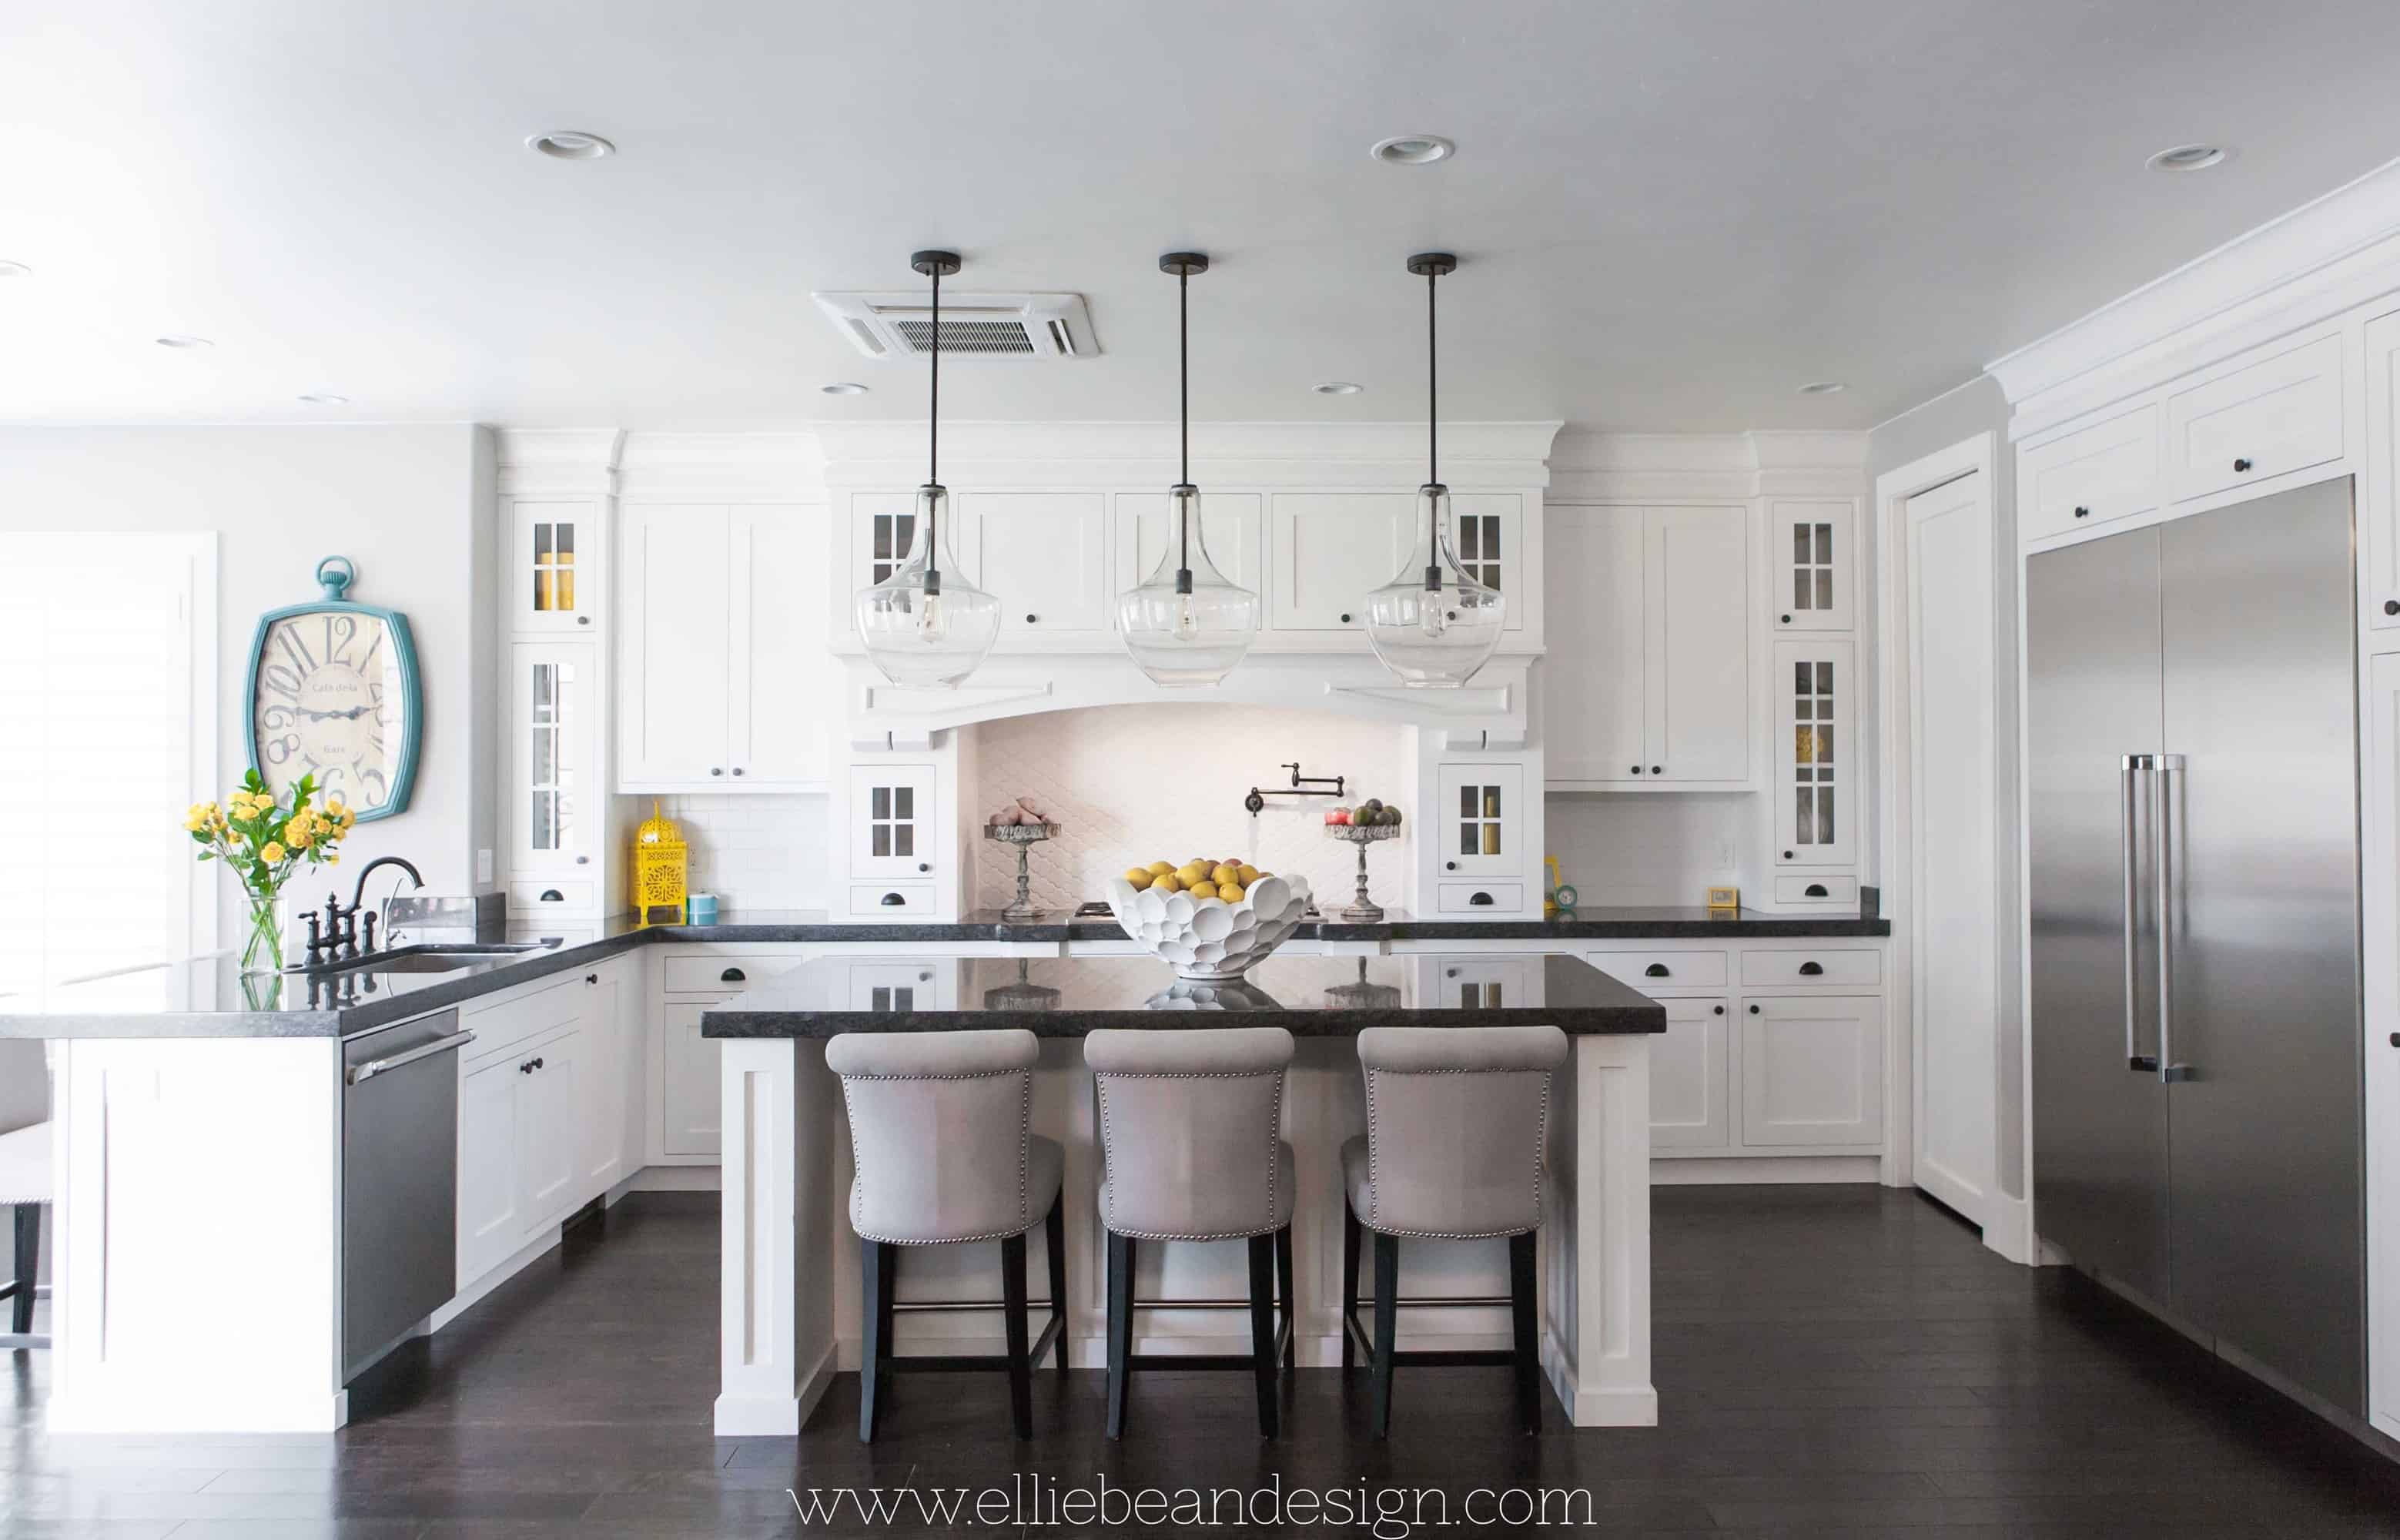 Delicieux 10 Rules To Create The Perfect White Kitchen! Www.overthebigmoon.com